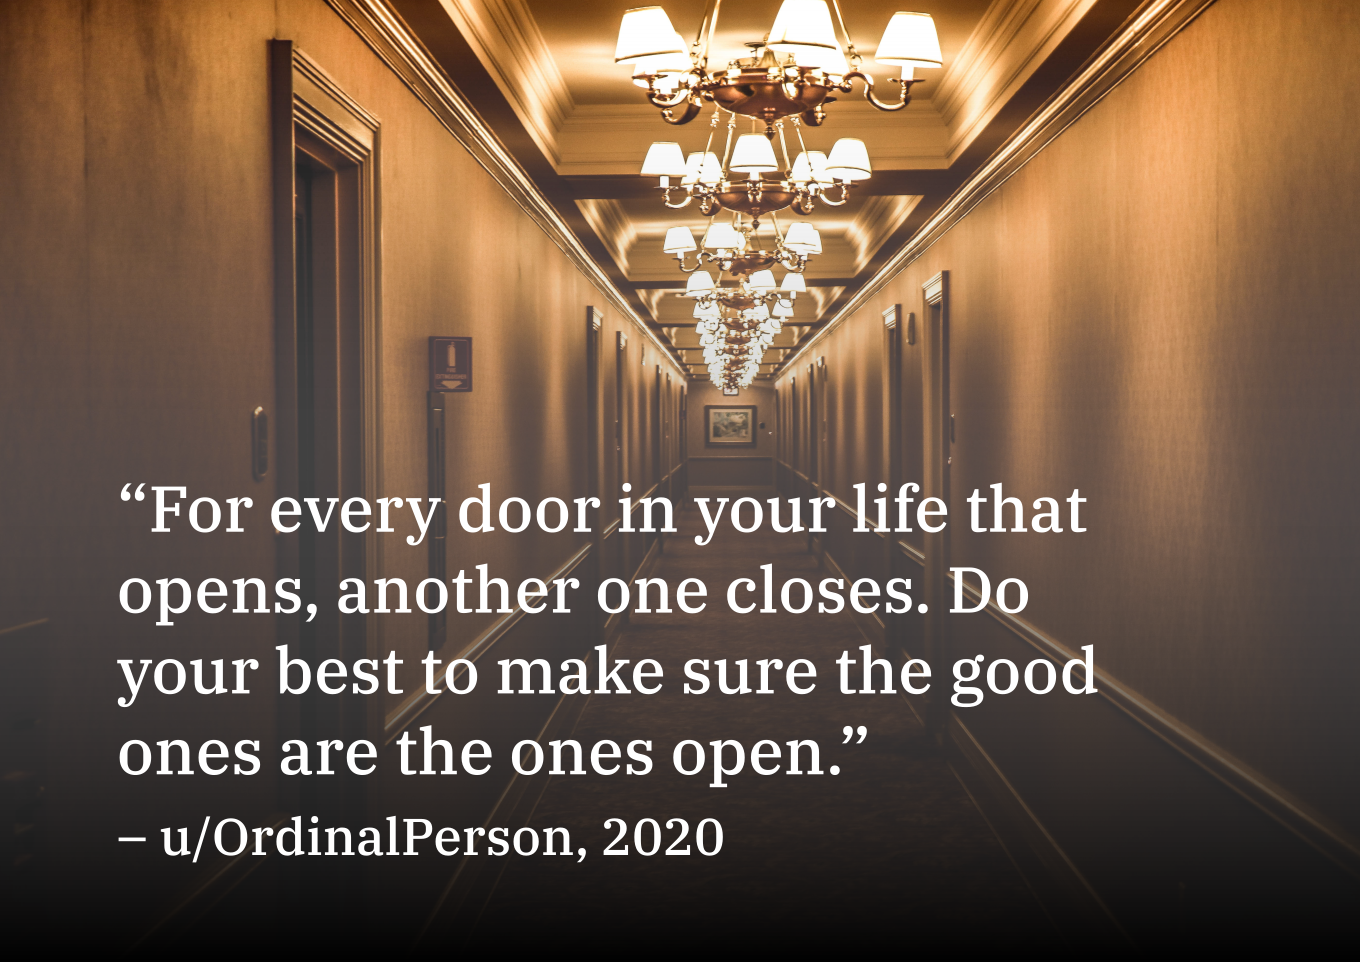 """3 . t I t..> 4.,1 ' t 2 5 """"For every door/in yourfifie that opens, any one closes. BO your best make sure the good ones are the ones open."""" — u/OrdinalPerson, 2020 https://inspirational.ly"""